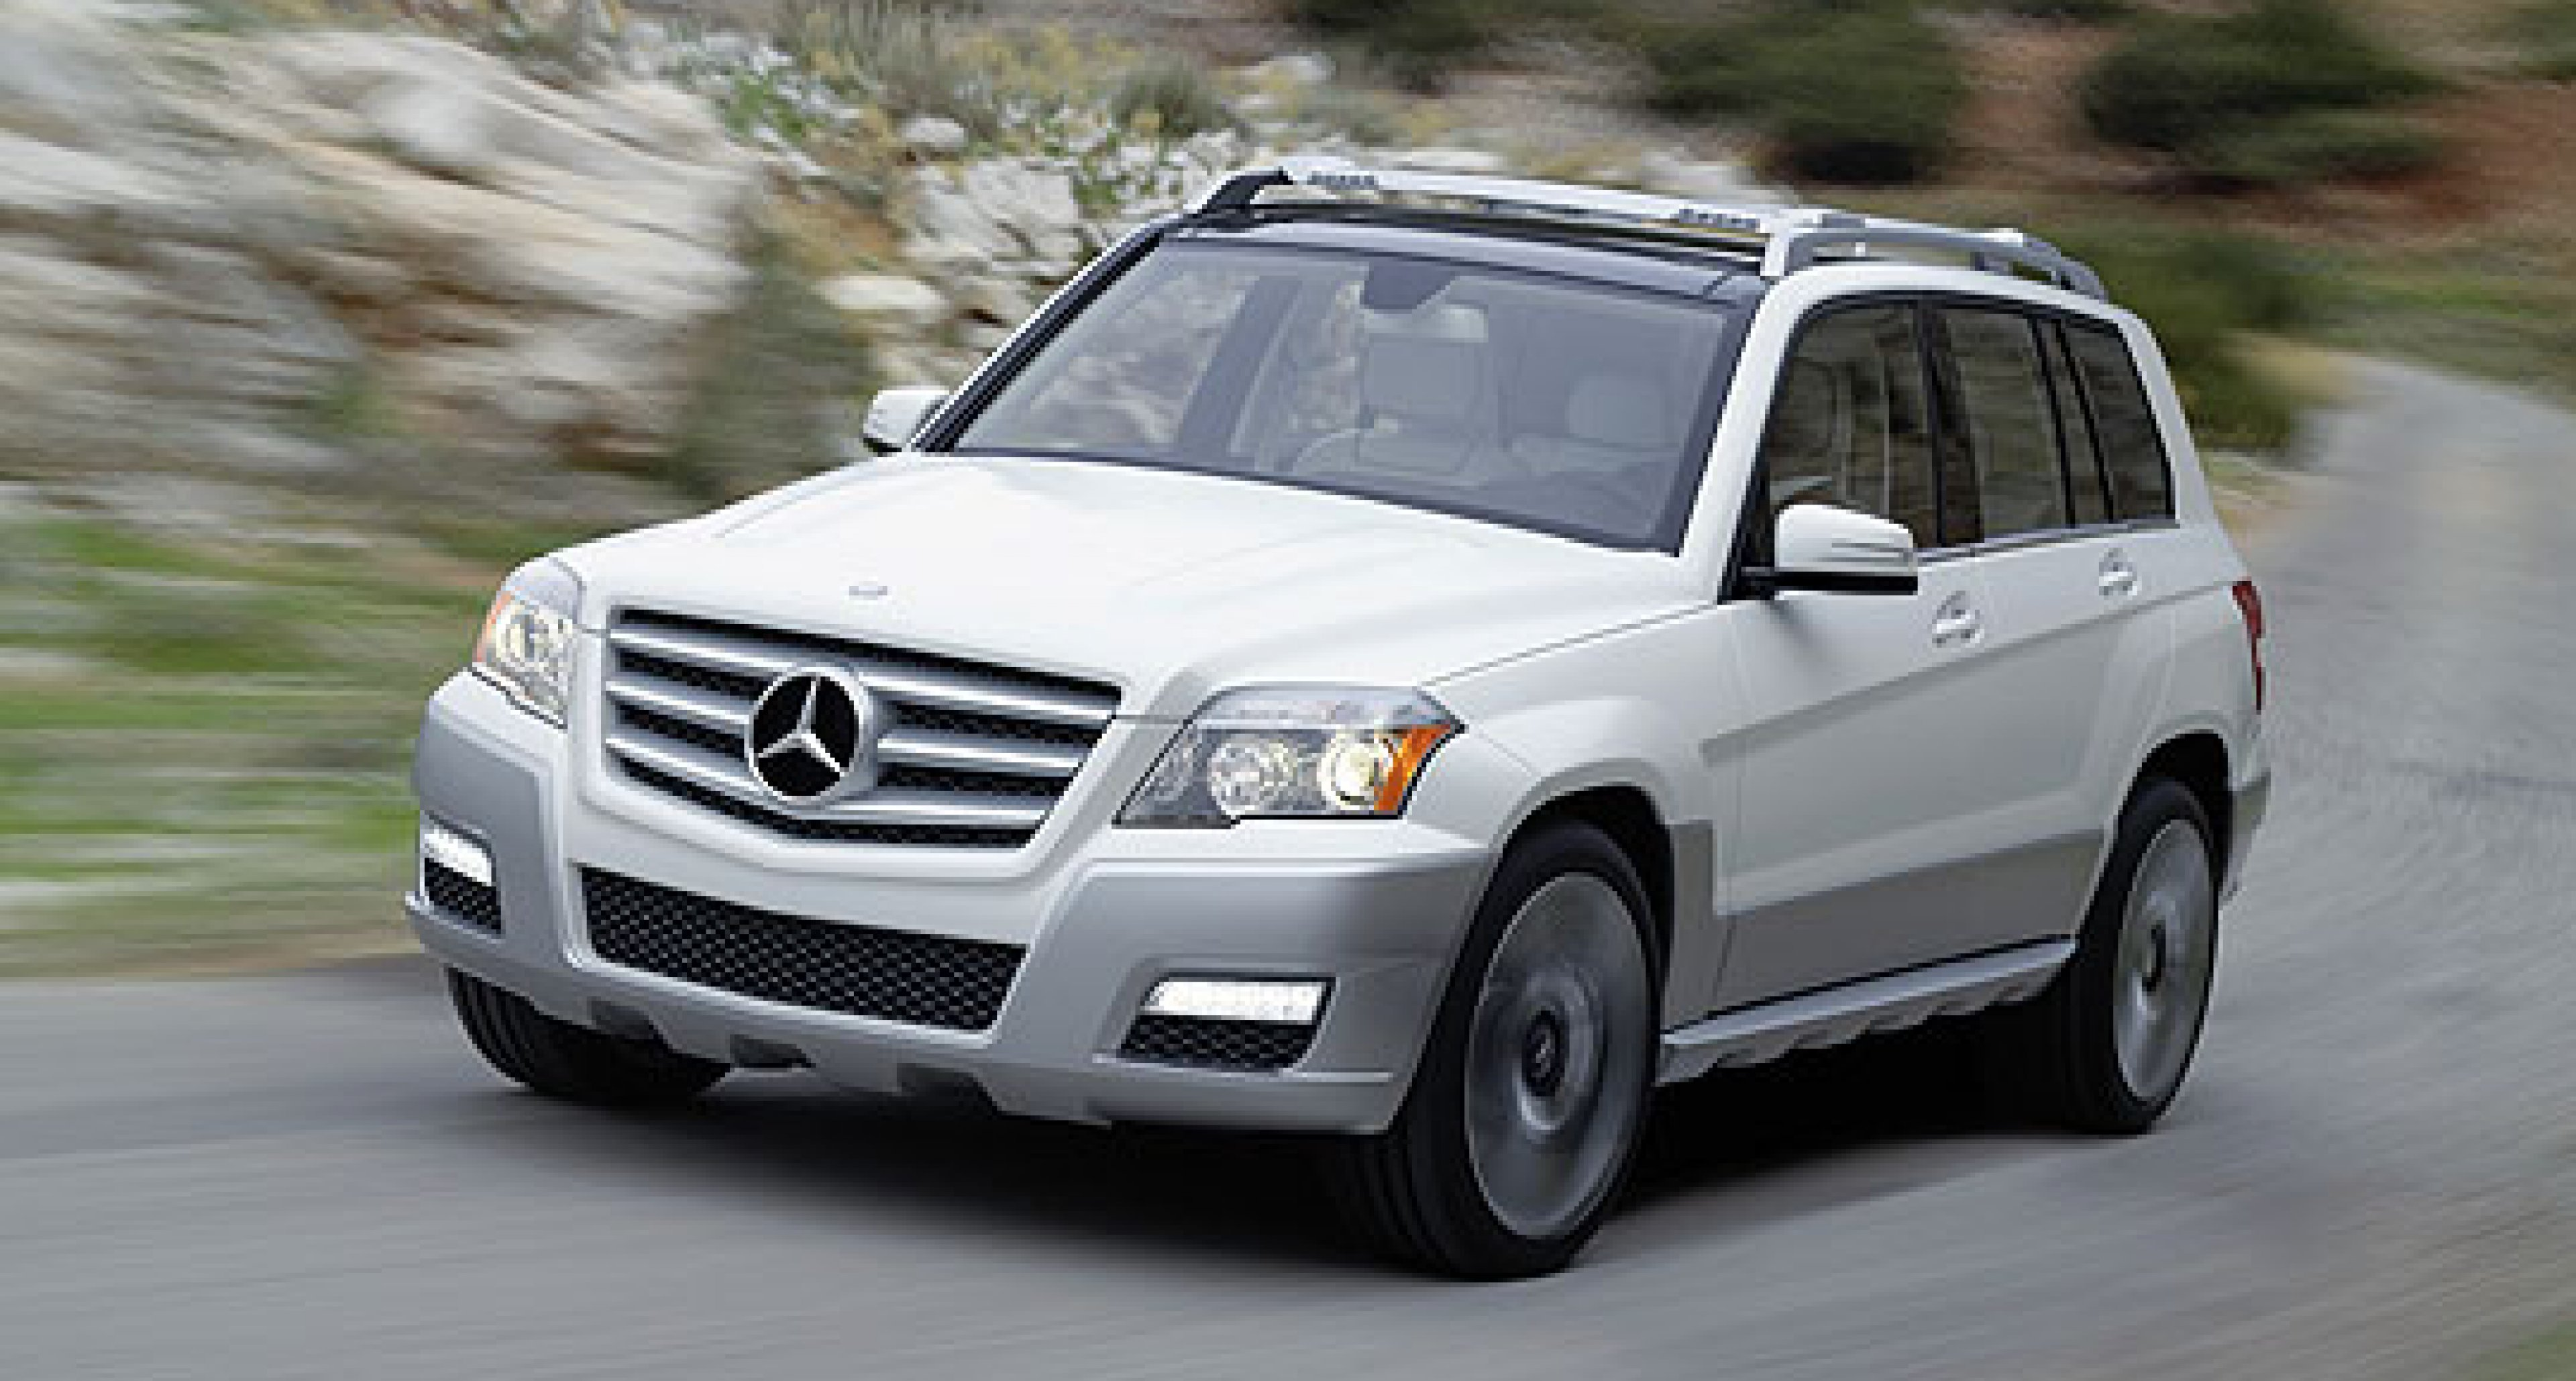 New Baby SUV from Mercedes